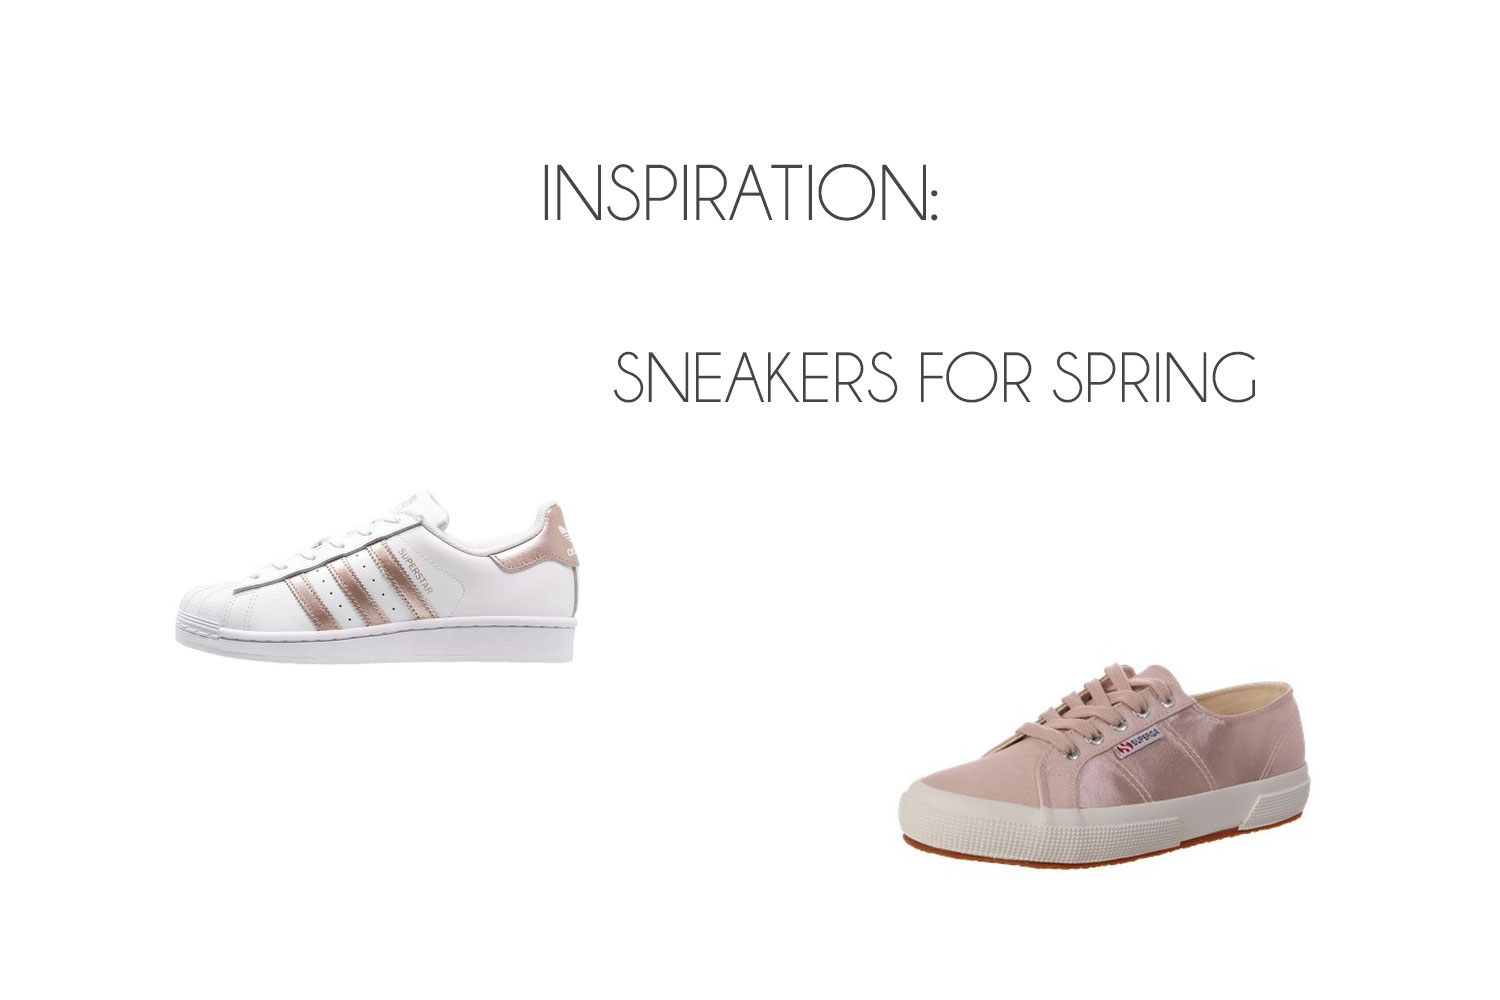 Inspiration: Sneakers for Spring - Sneakers